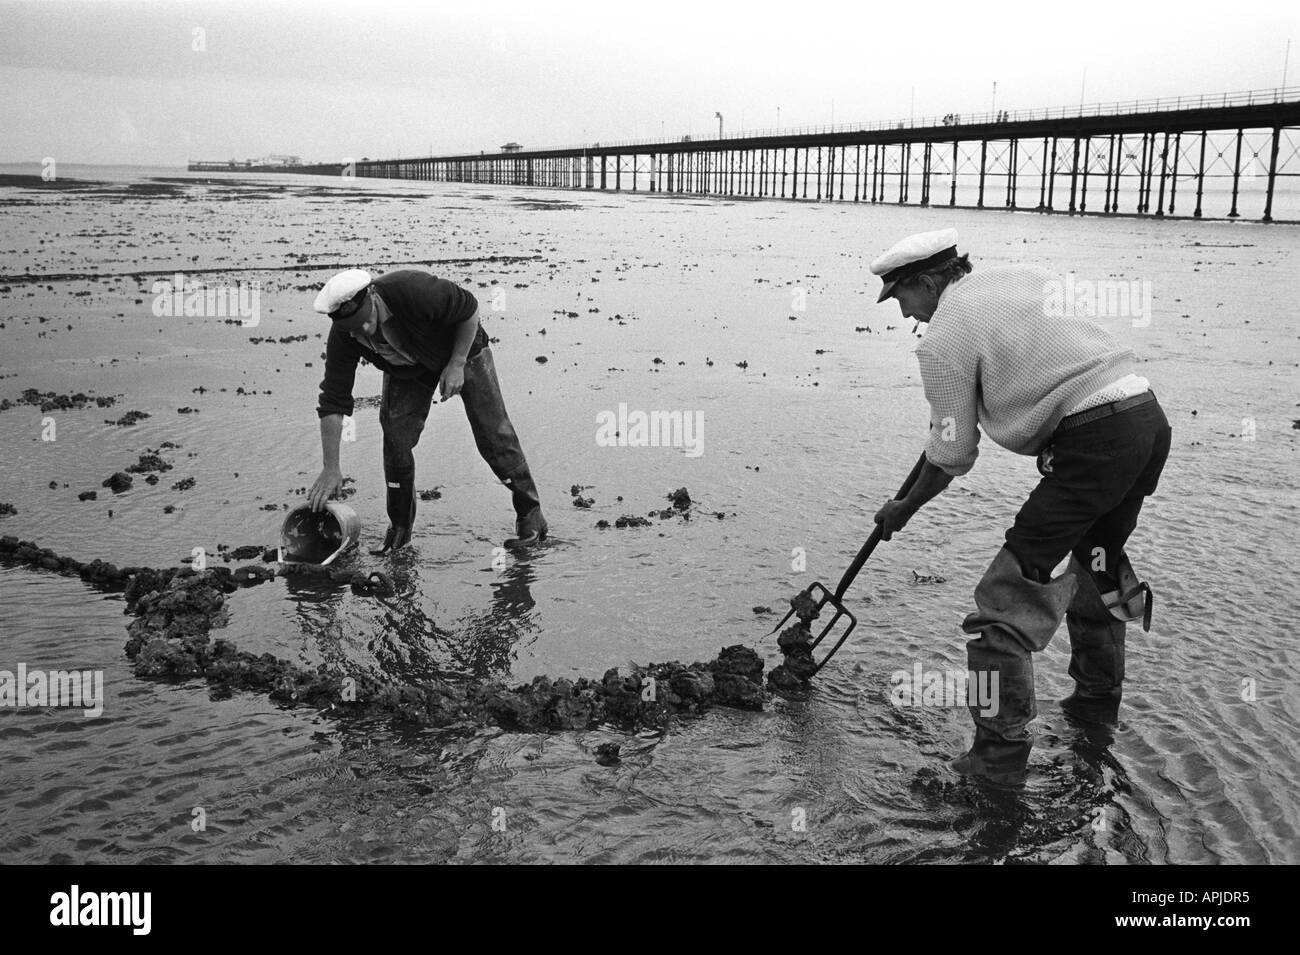 Fishermen digging for Lug worms  Southend on Sea, Pier Essex. England 1974. HOMER SYKES Stock Photo